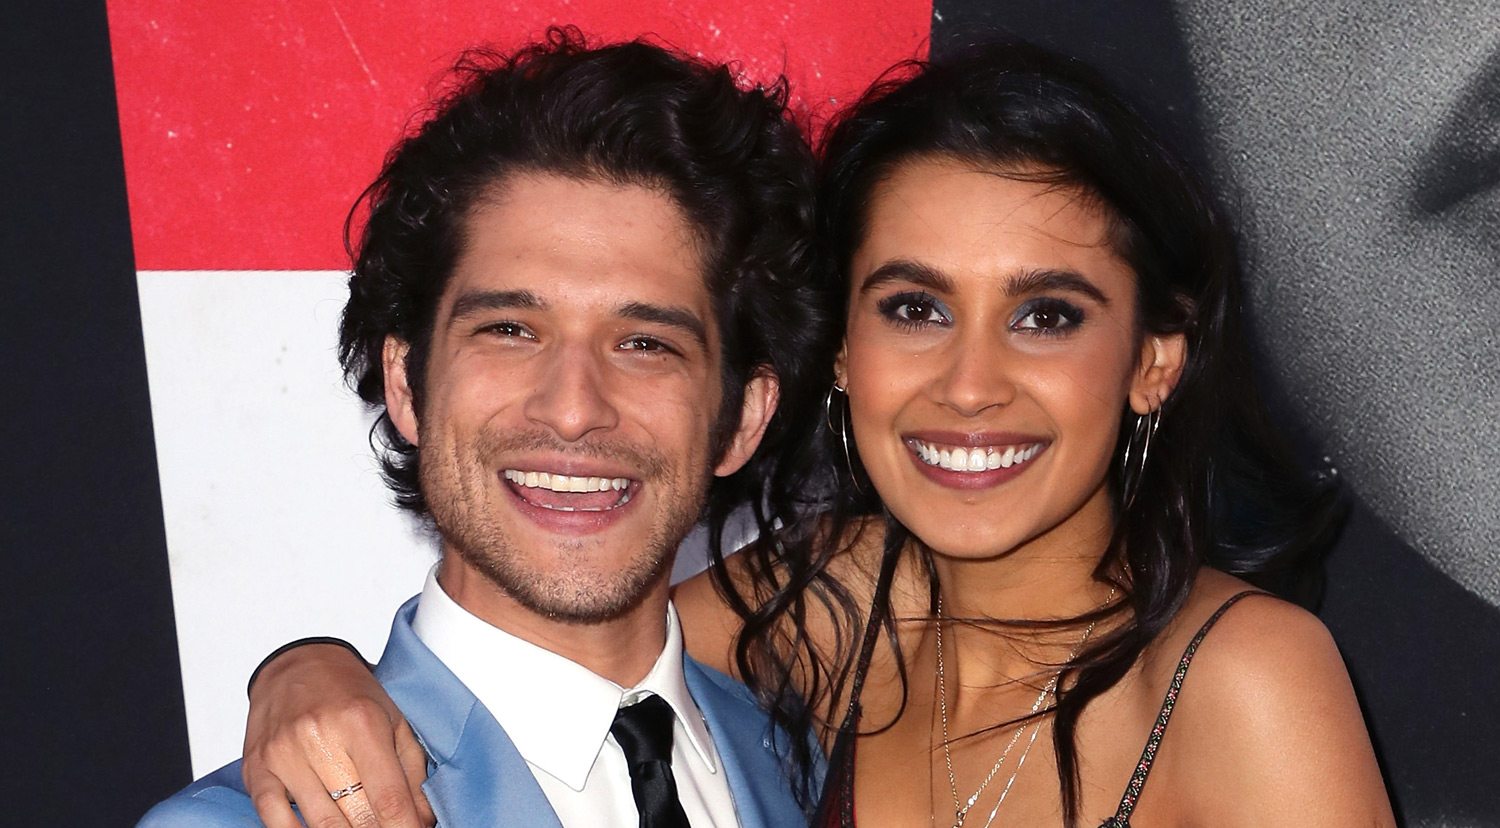 who-is-tyler-posey-dating-in-real-life-american-porn-stories